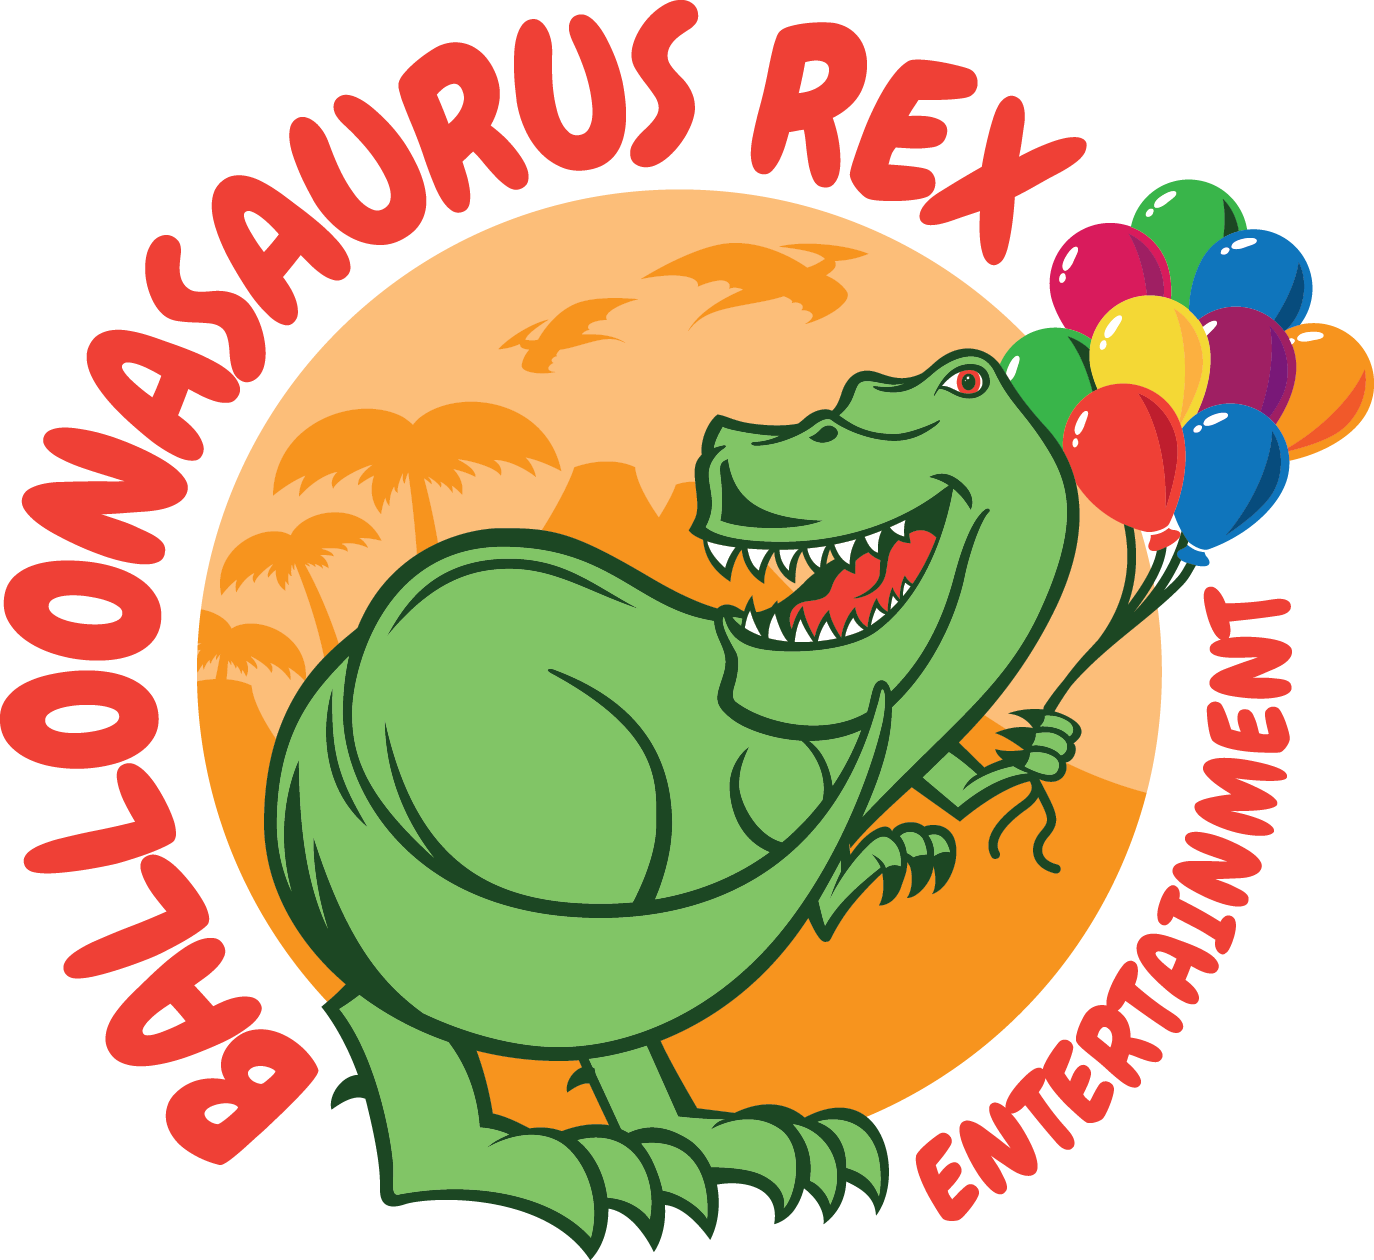 Balloonasaurus Rex Entertainment